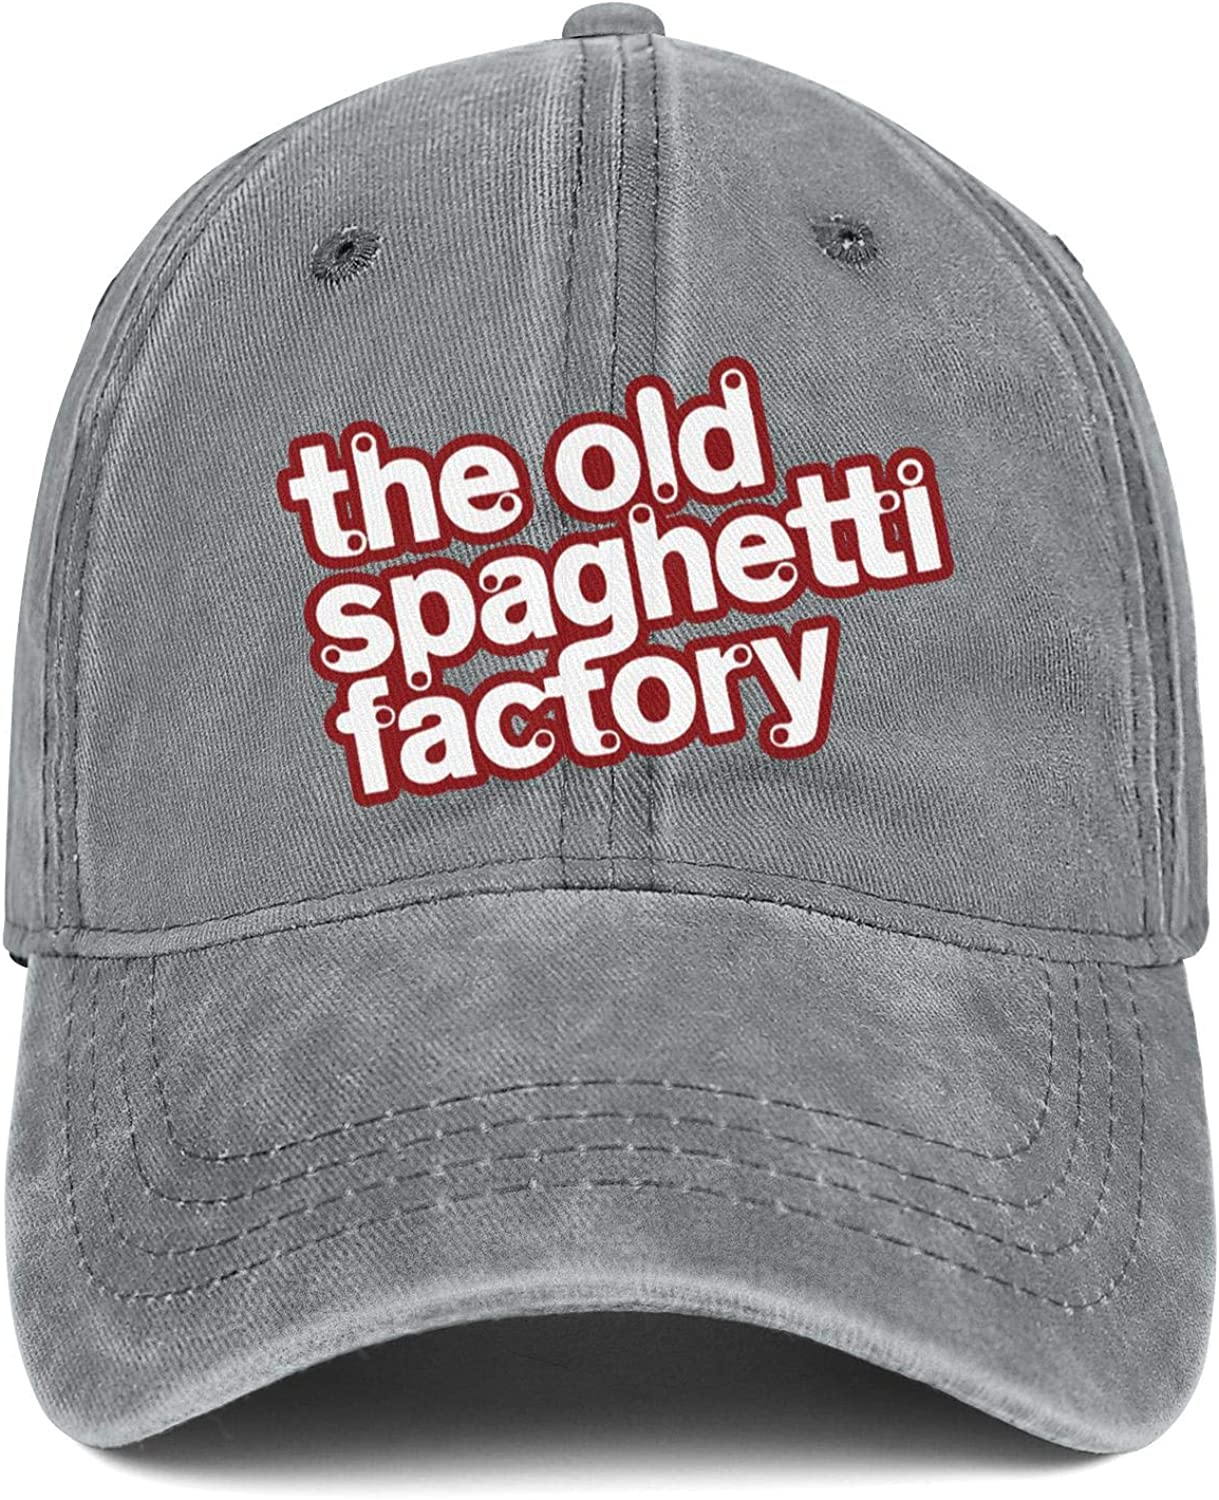 WintyHC The Old Spaghetti Factory Cowboy Hat Trucker Hat Adjustable Fits Skull Cap